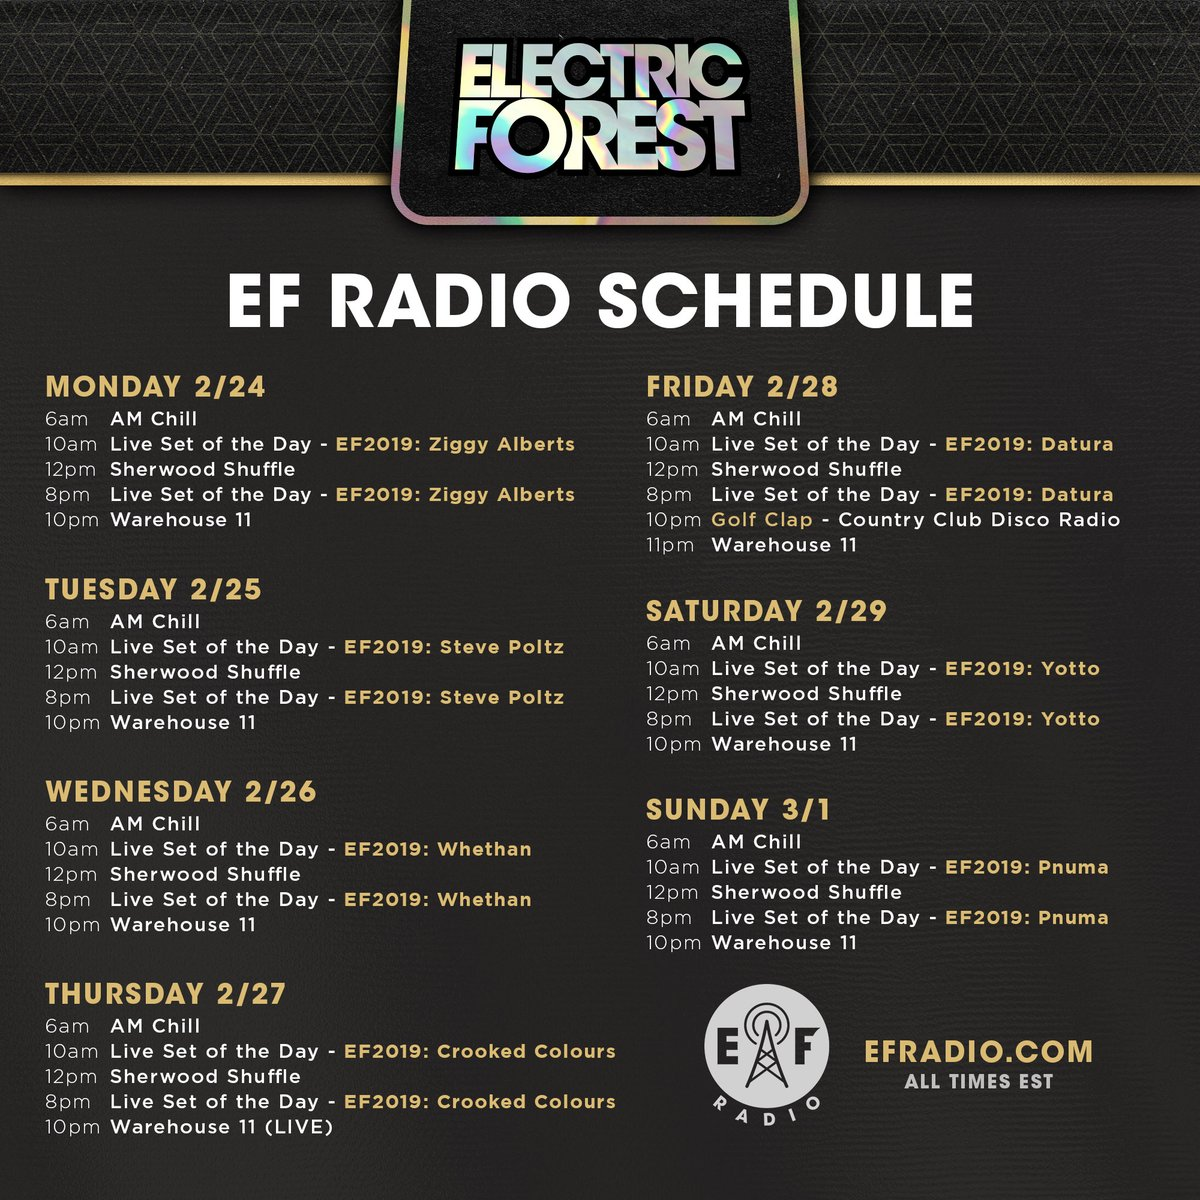 This week on @EForestRadio!   Tune in and hear #EF2019 Sets from @StevePoltz, @WhethanMusic, @ZiggyJanAlberts, @YottoMusic and others, plus daily broadcasts of the AM Chill, Sherwood Shuffle and more...   Hear it 24/7/365 at http://EFRadio.com !pic.twitter.com/8ttC8Vwpda